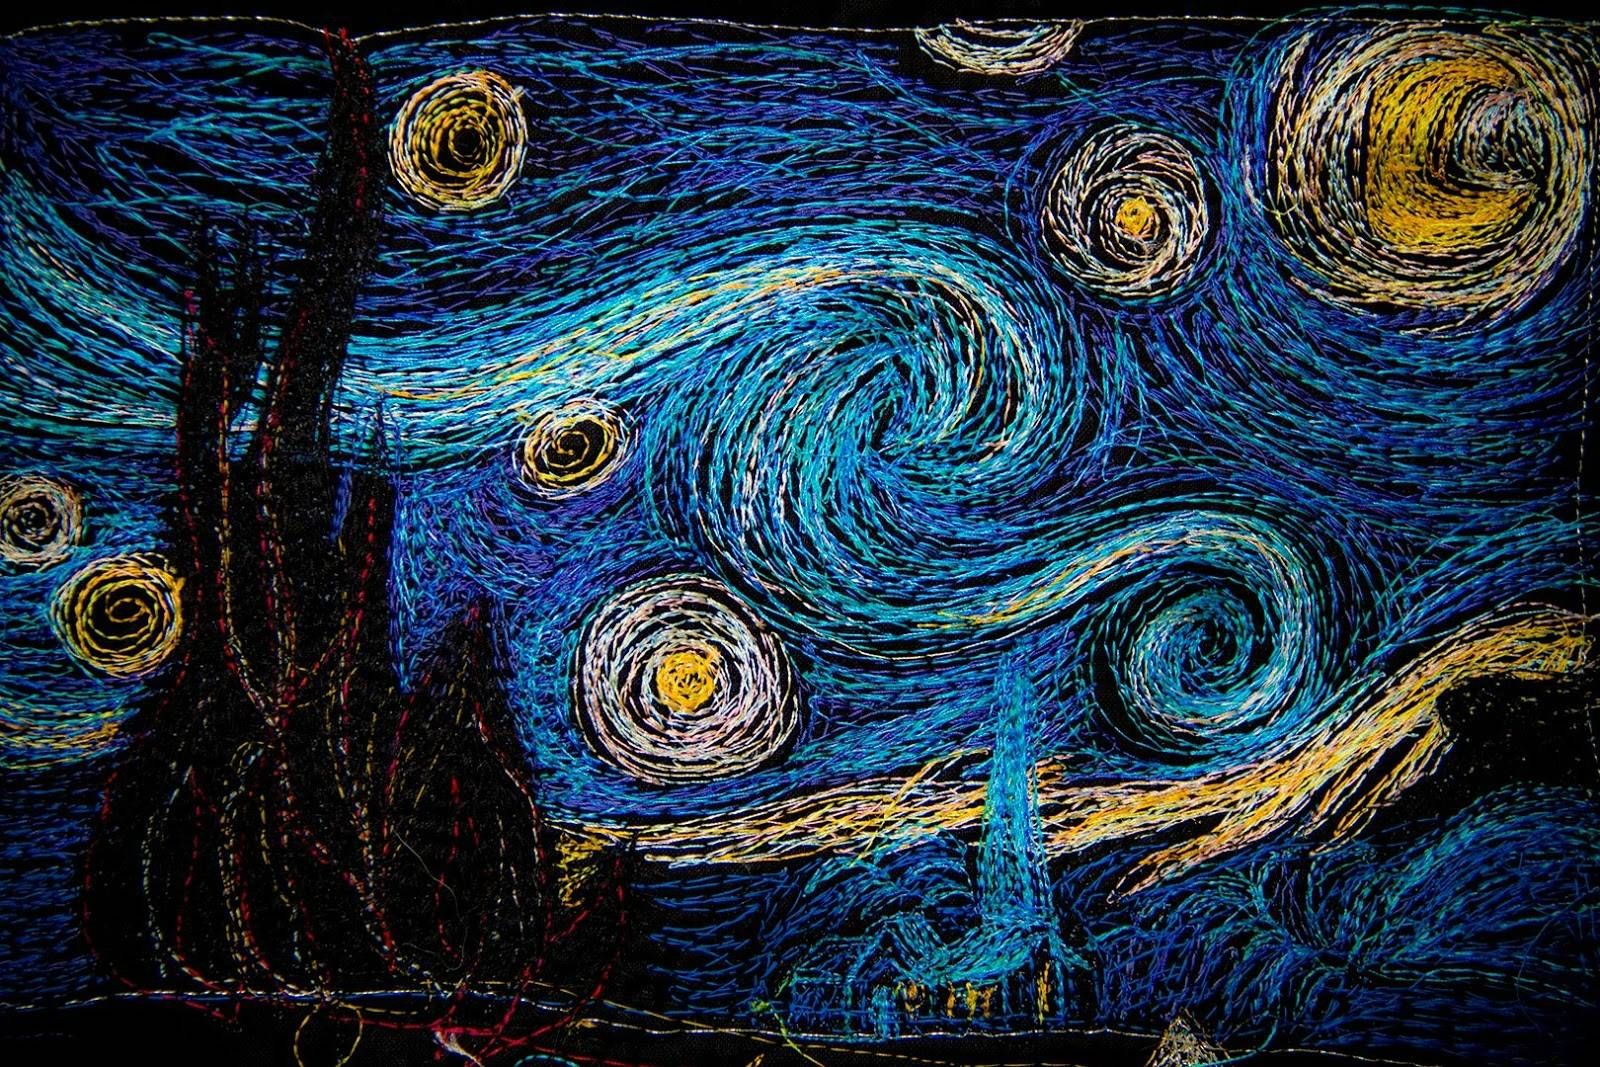 starry night quilt - Google Search (With images) | Starry ...